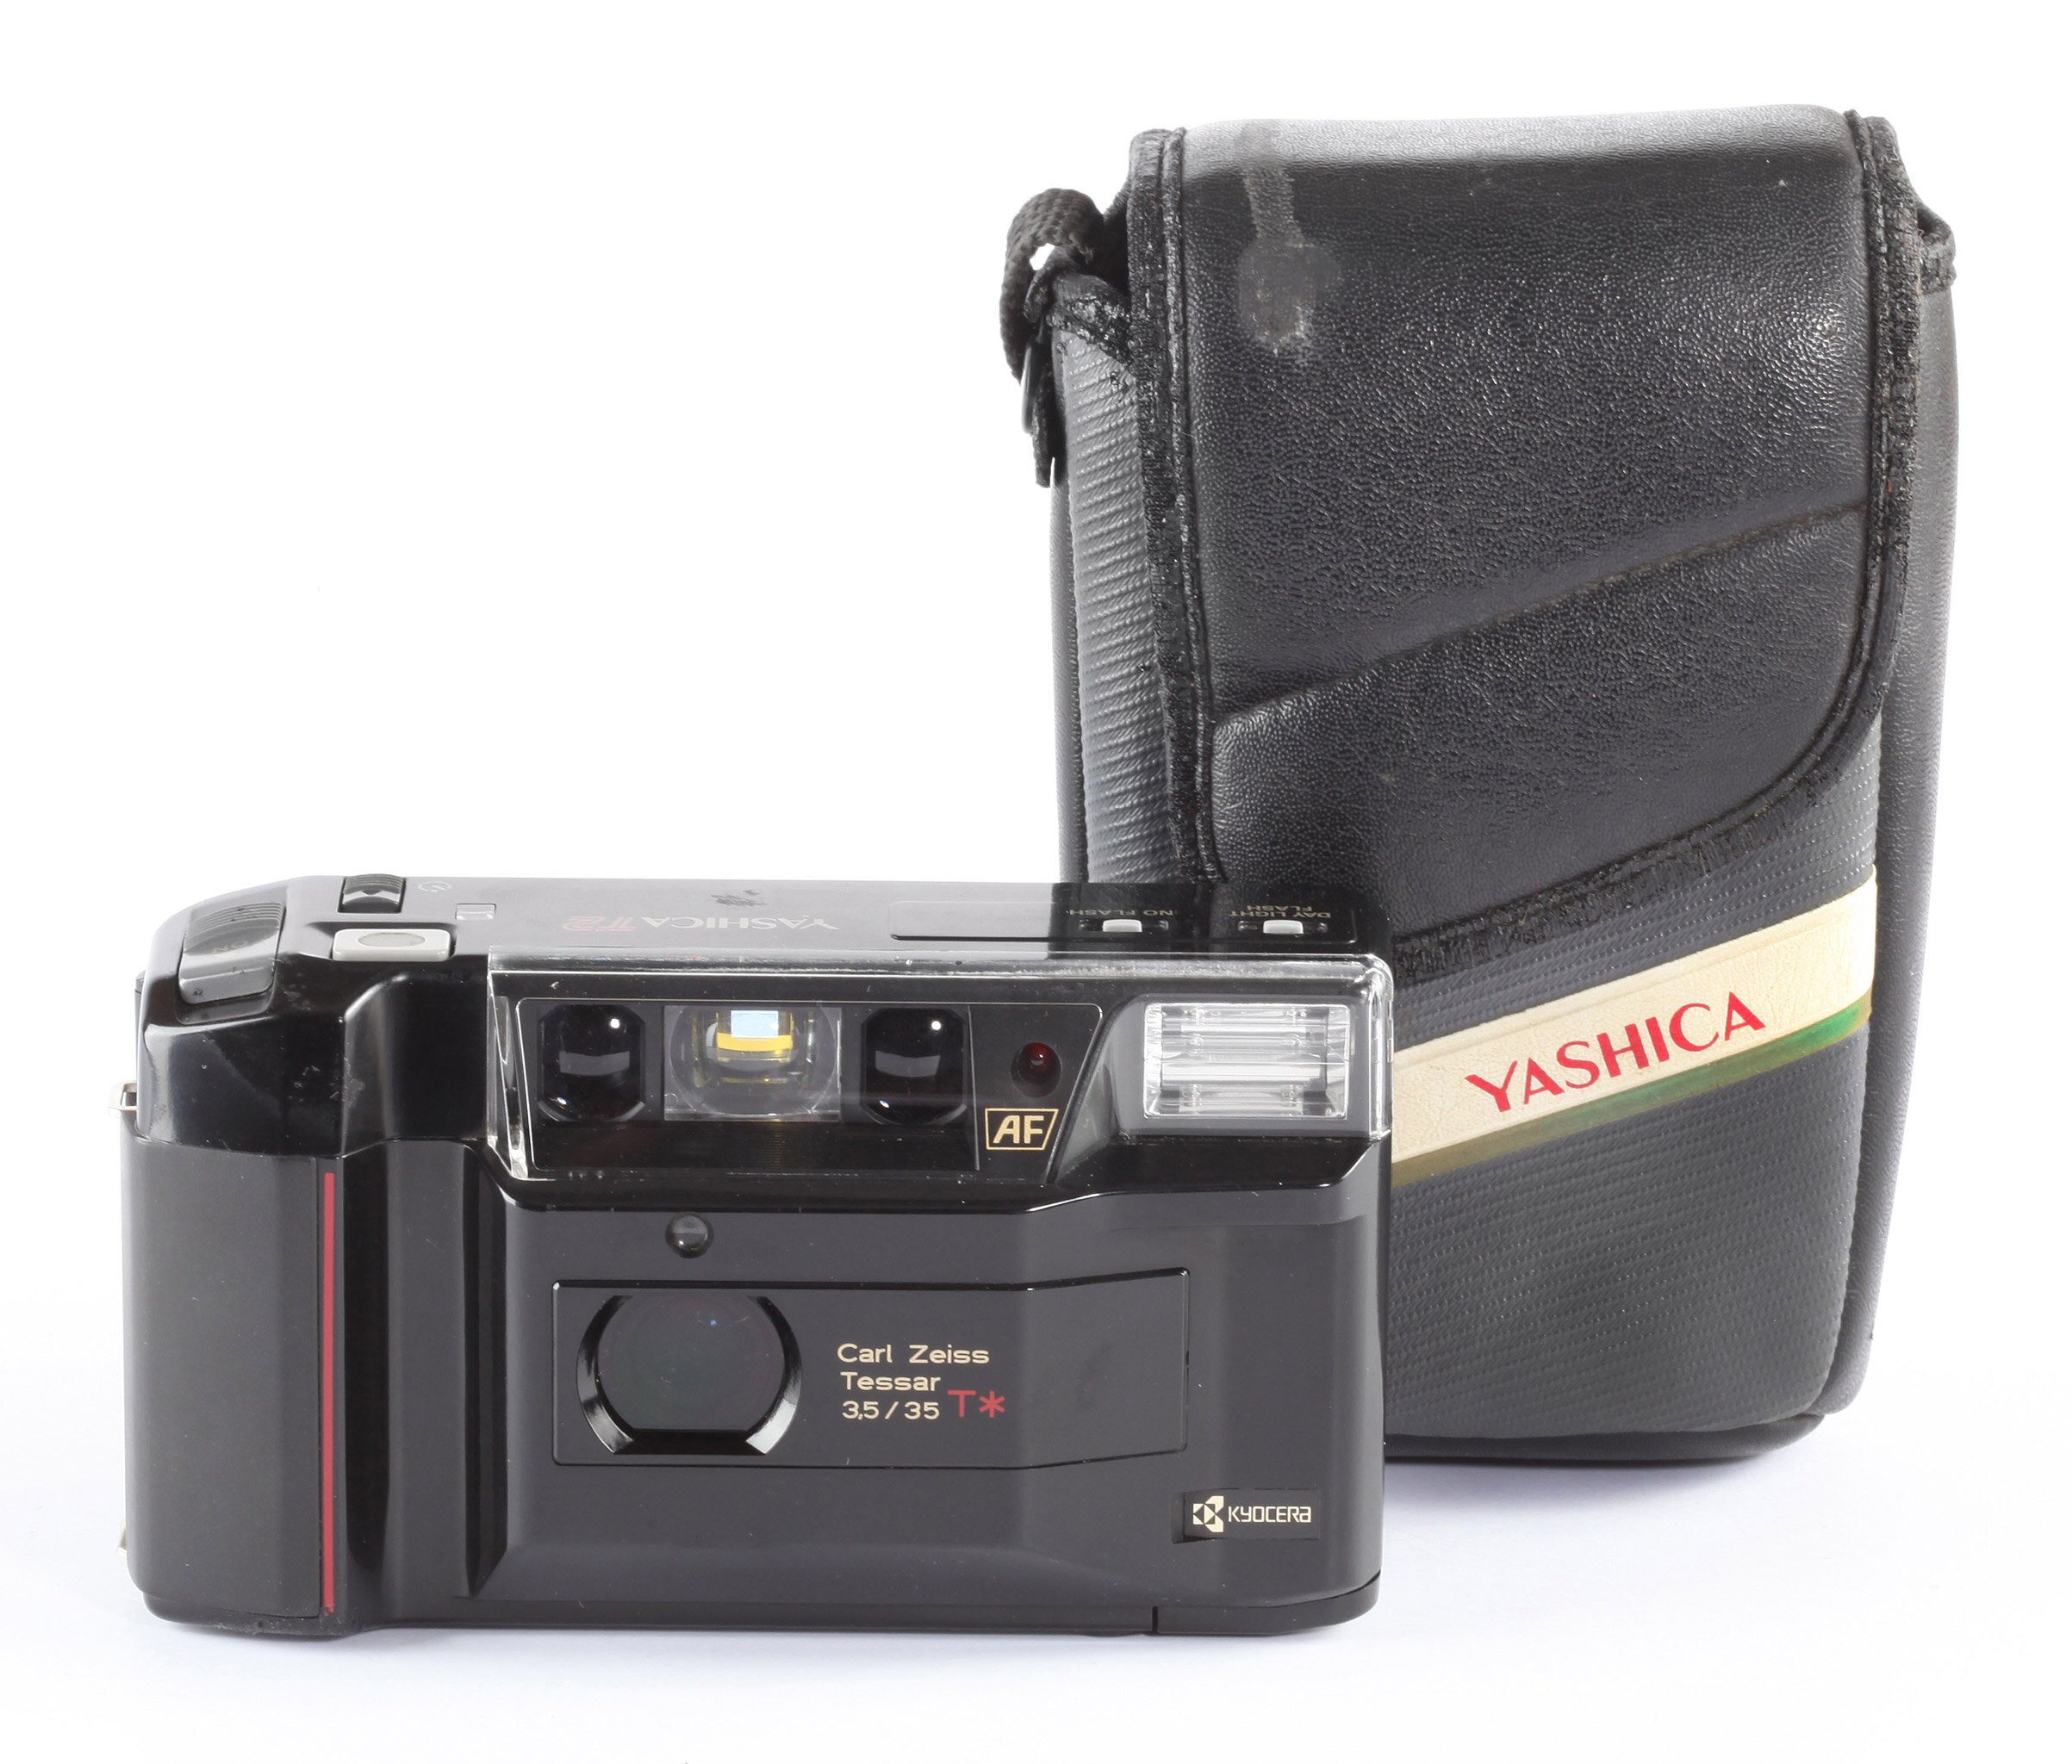 Yashica T2 Carl Zeiss Tessar 3,5/35mm T*